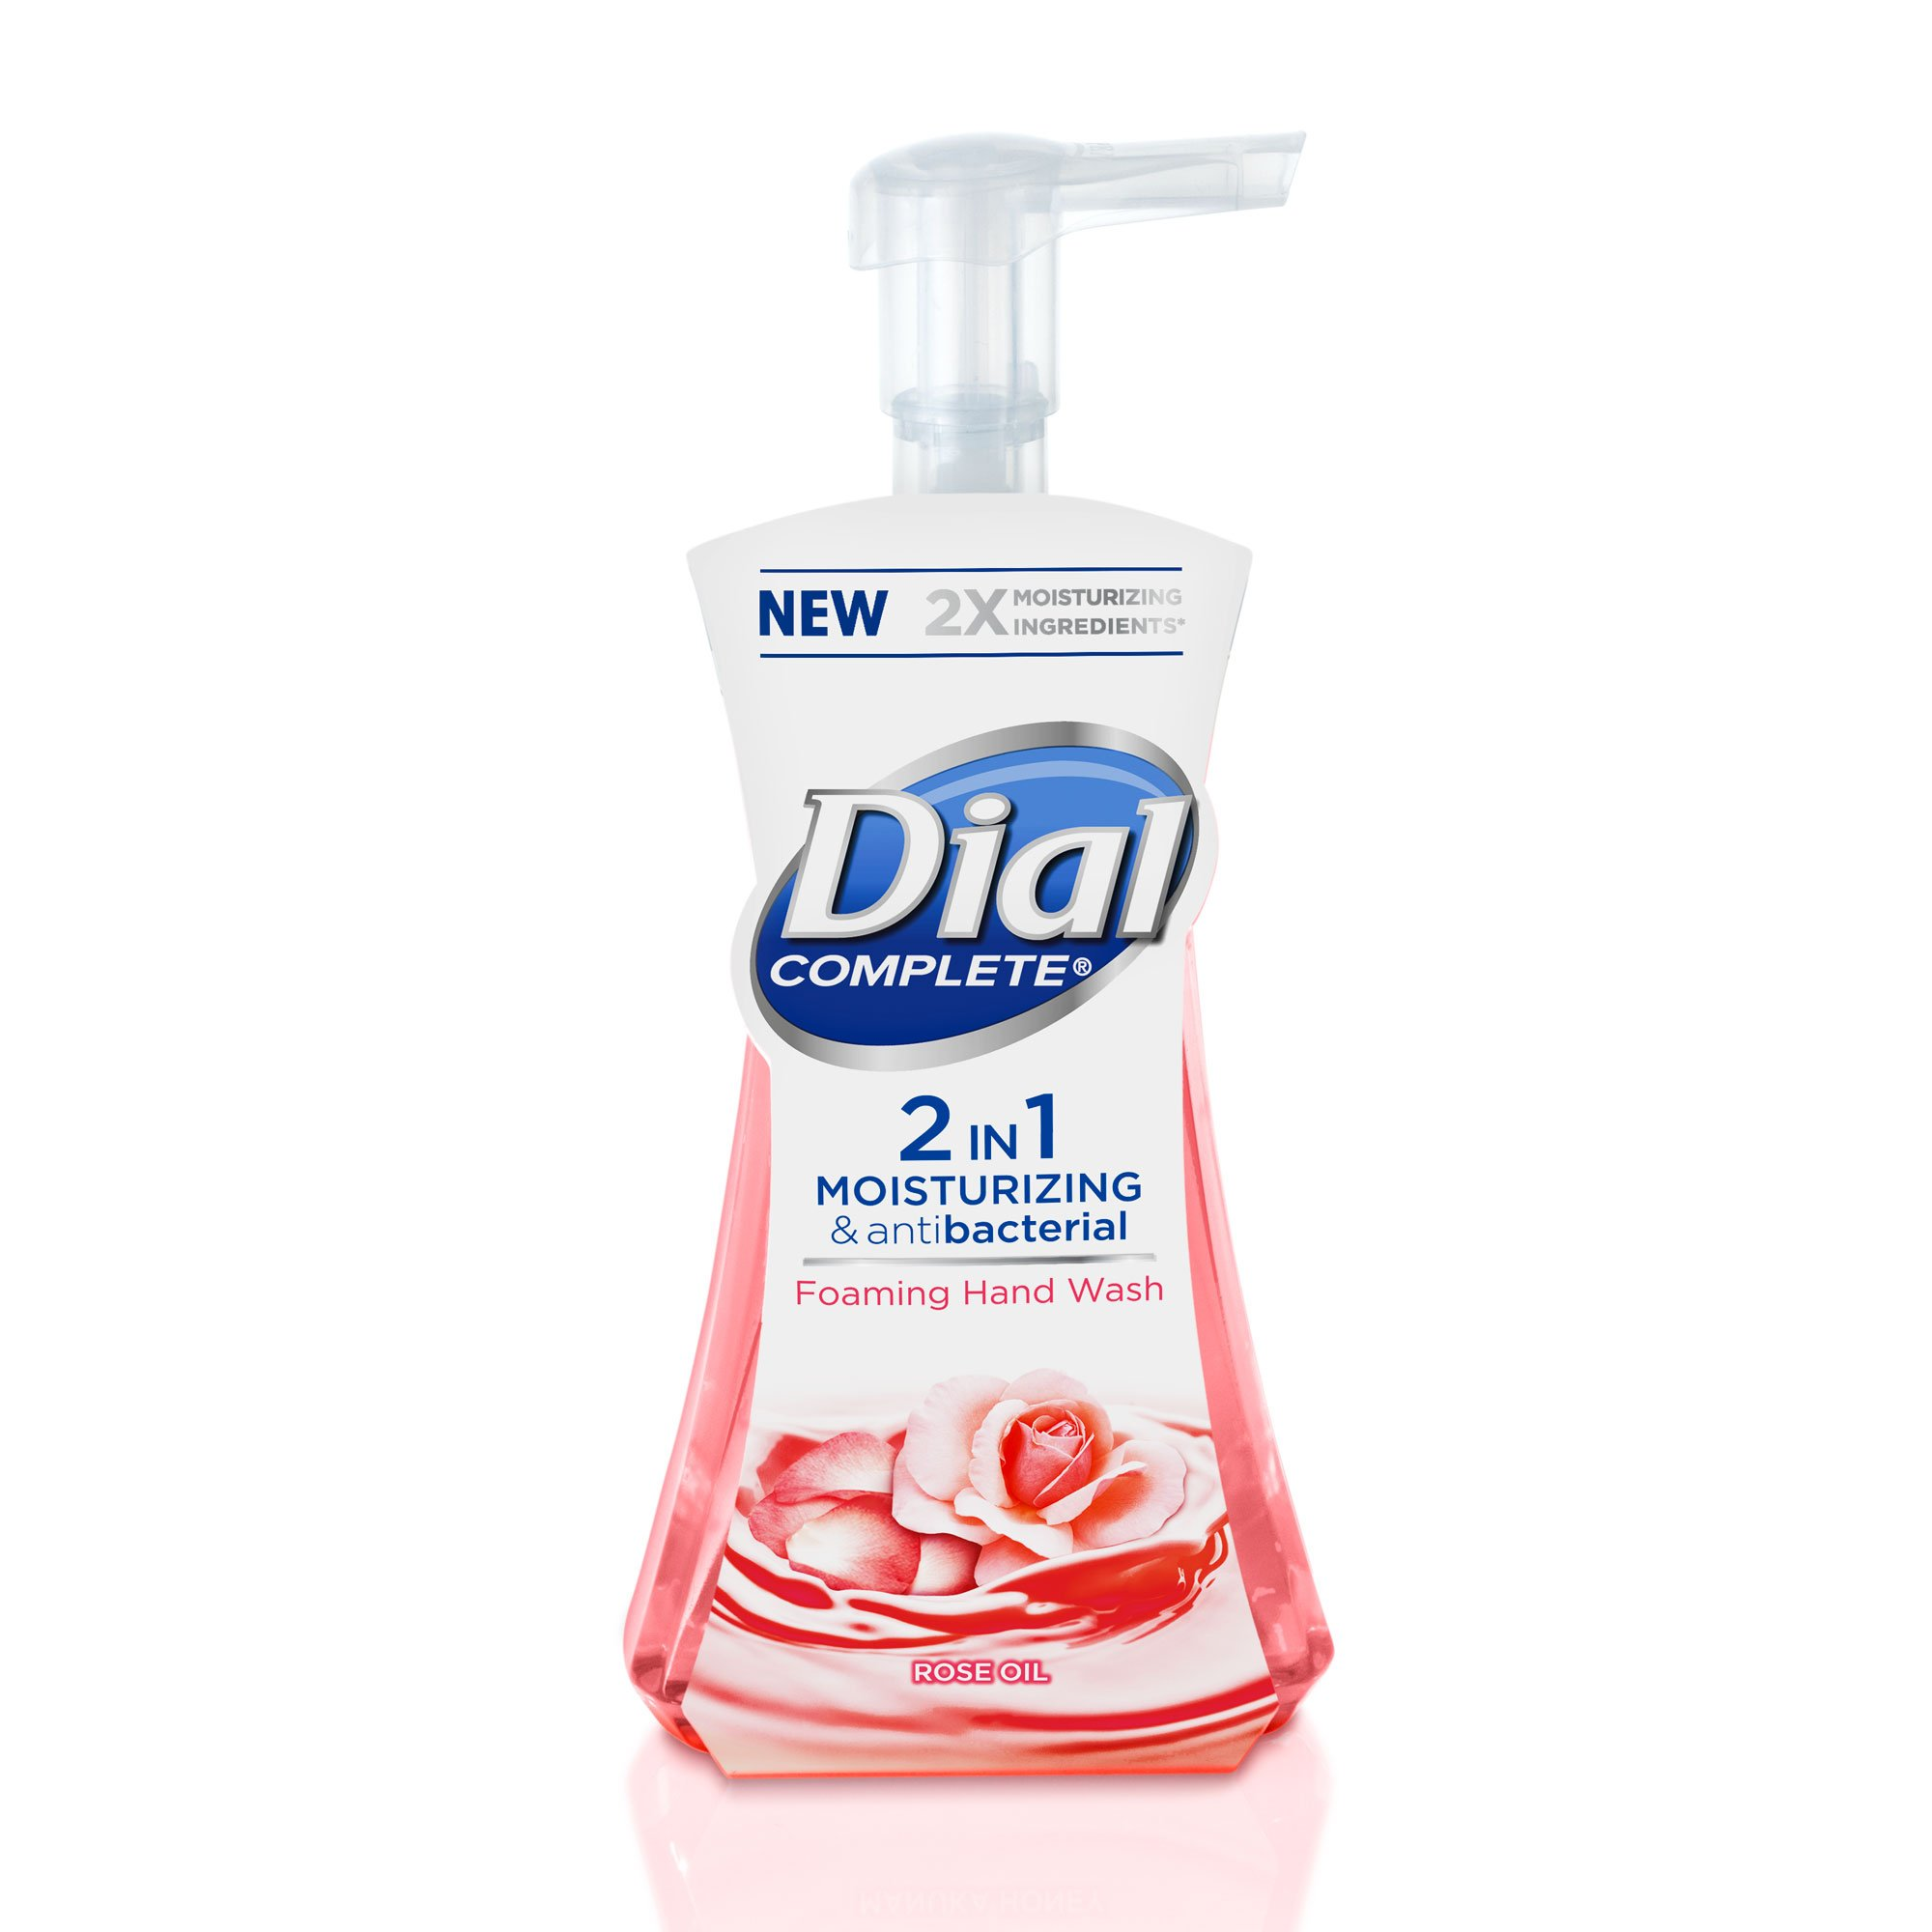 Dial Complete 2 in 1 Moisturizing & Antibacterial Foaming Hand Wash, Rose Oil, 7.5 Ounce